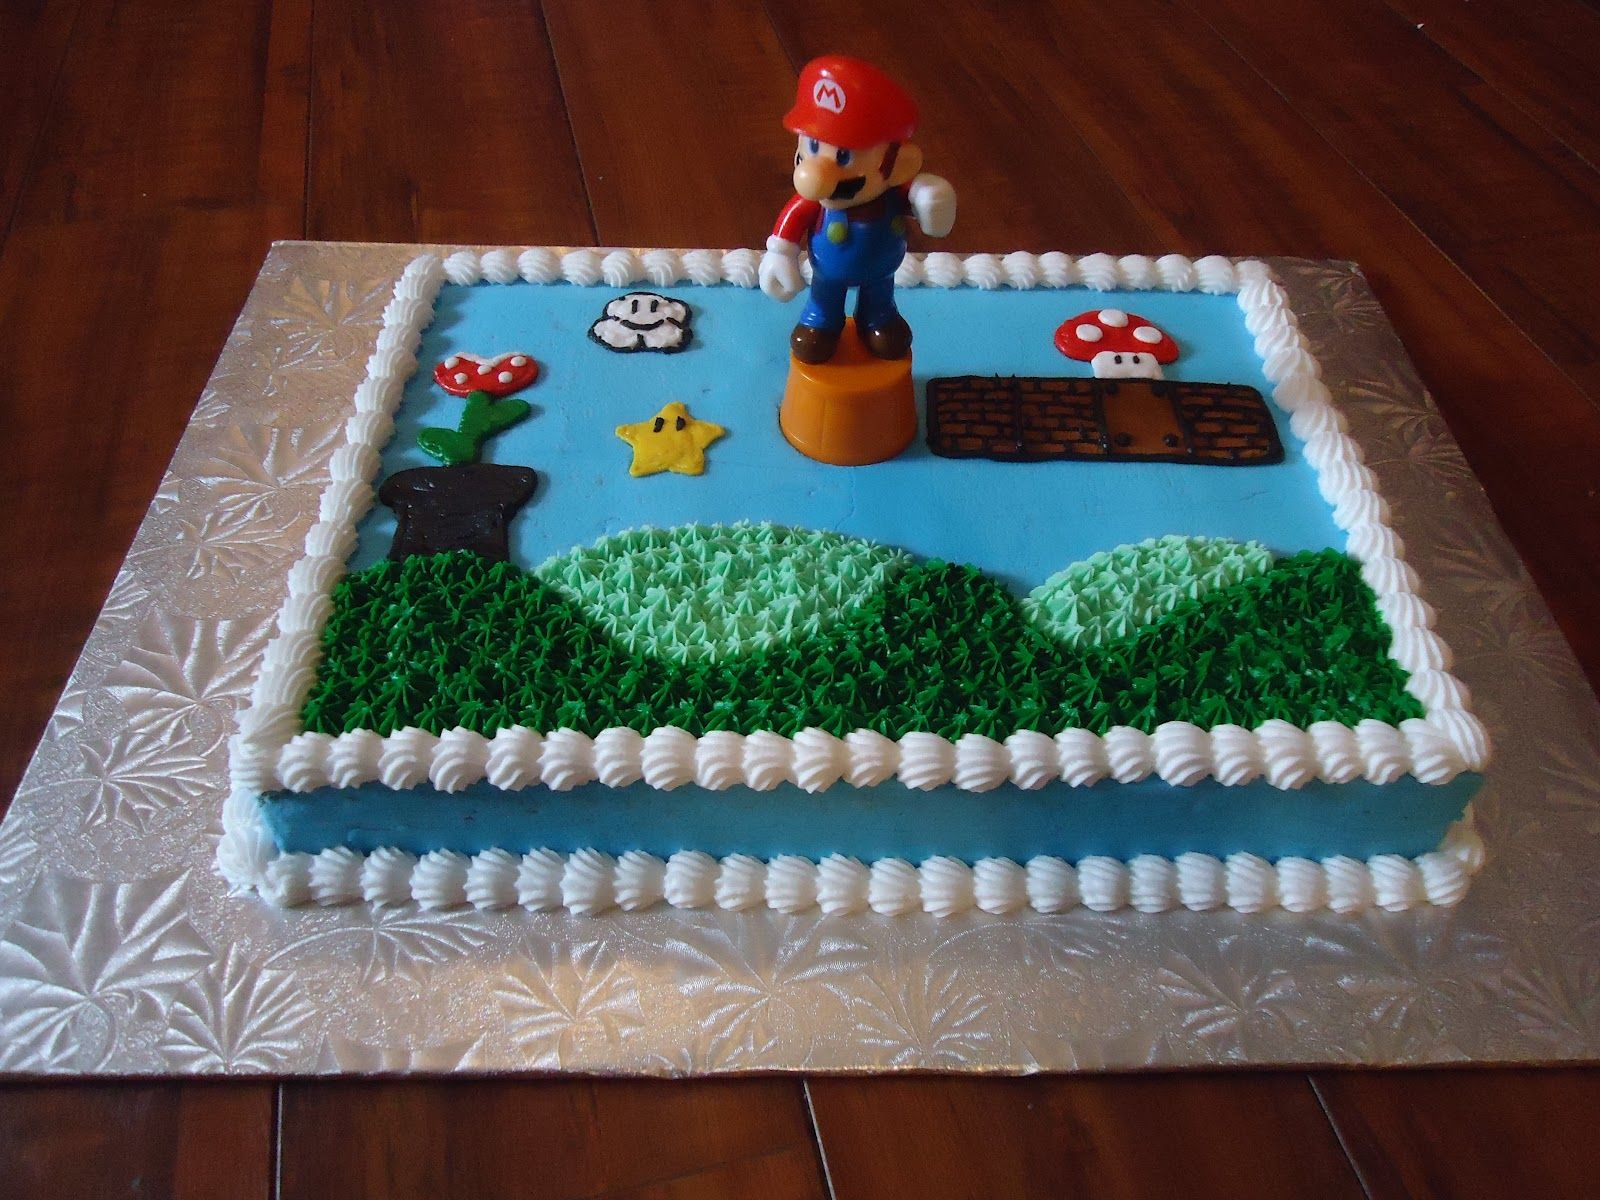 Super Mario Cake Designs With Buttercream Frosting Decorations